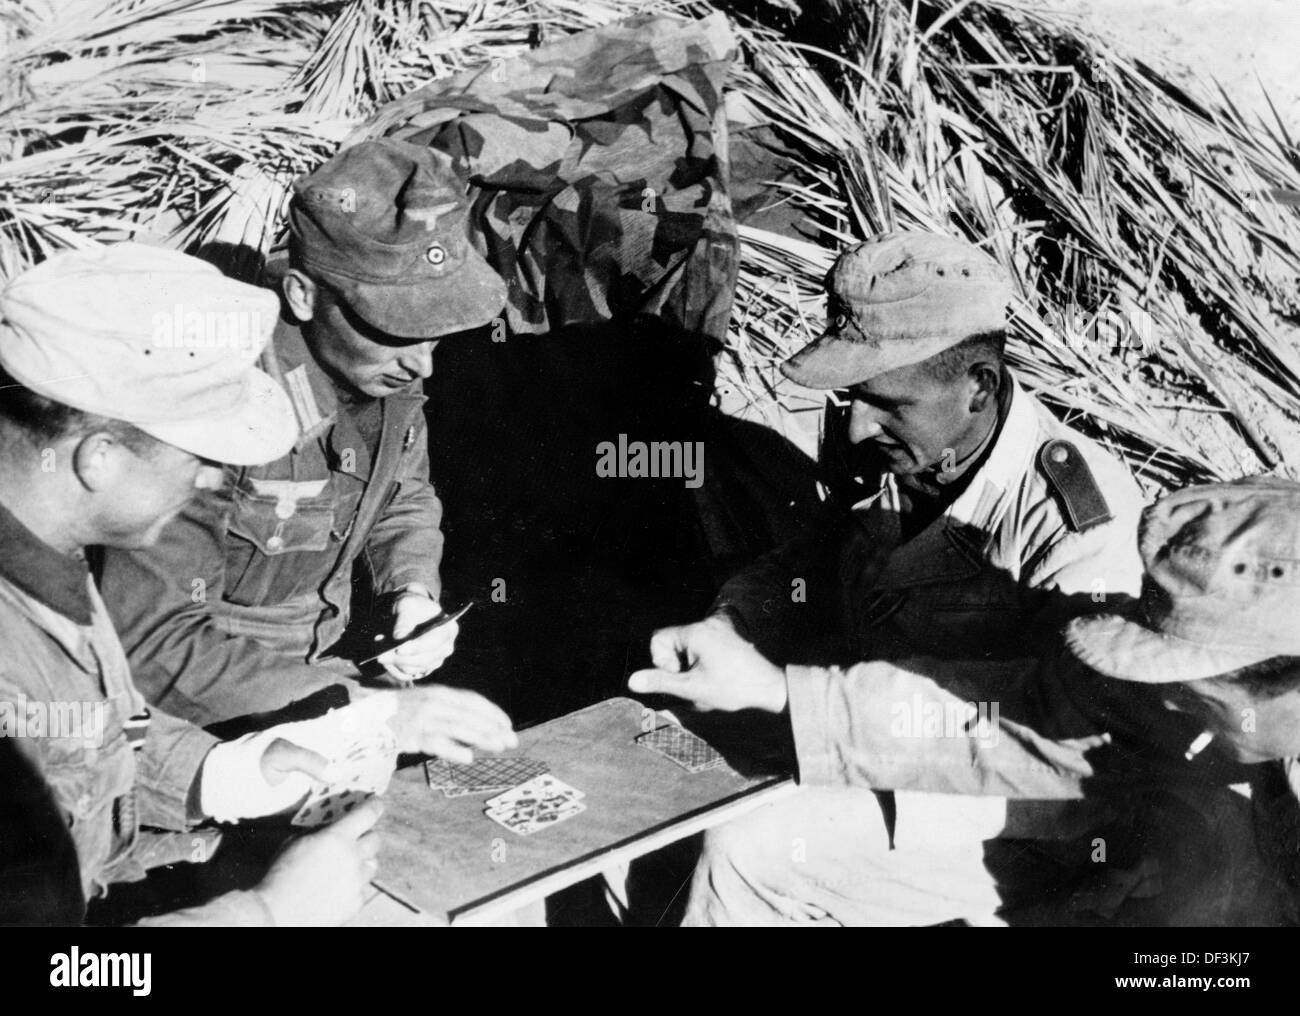 The image from the Nazi Propaganda! depicts soldiers of the German Wehrmacht playing cards in Africa, published on 4 April 1942. Place unknown. Photo: Berliner Verlag/Archiv - Stock Image